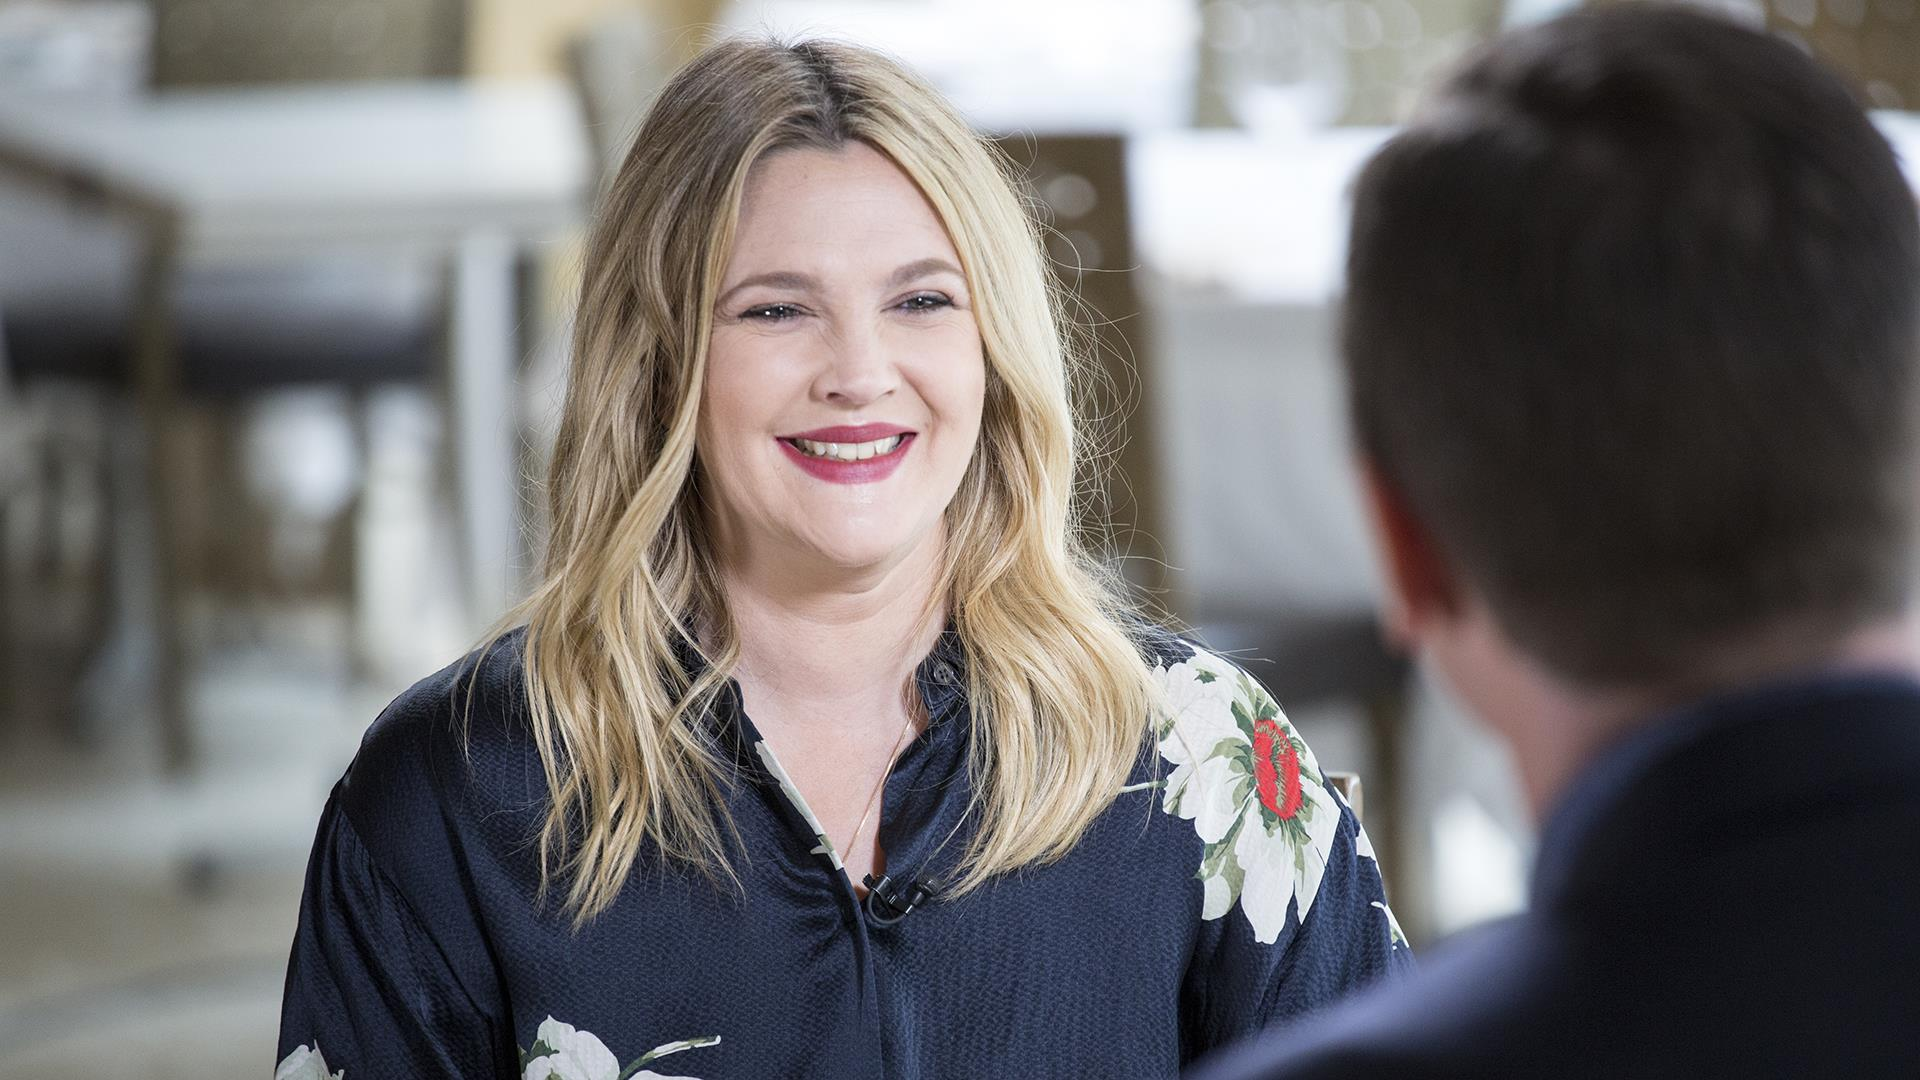 Drew Barrymore opens up about her cocaine use, relationship